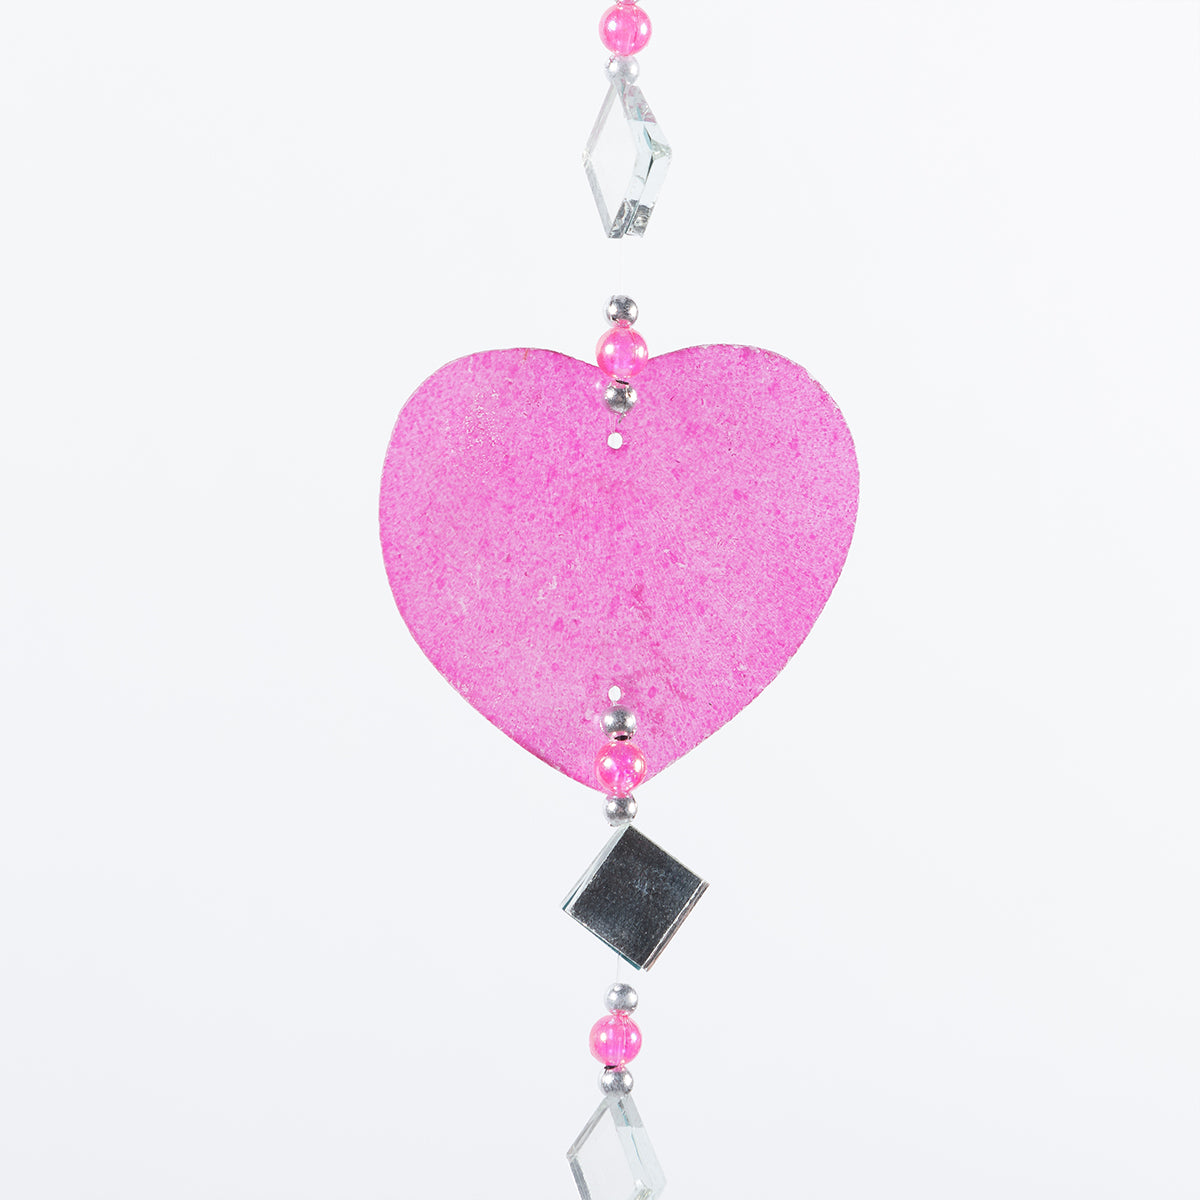 CAPIZ SHELL HANGER WITH MIRROR PINK HEART